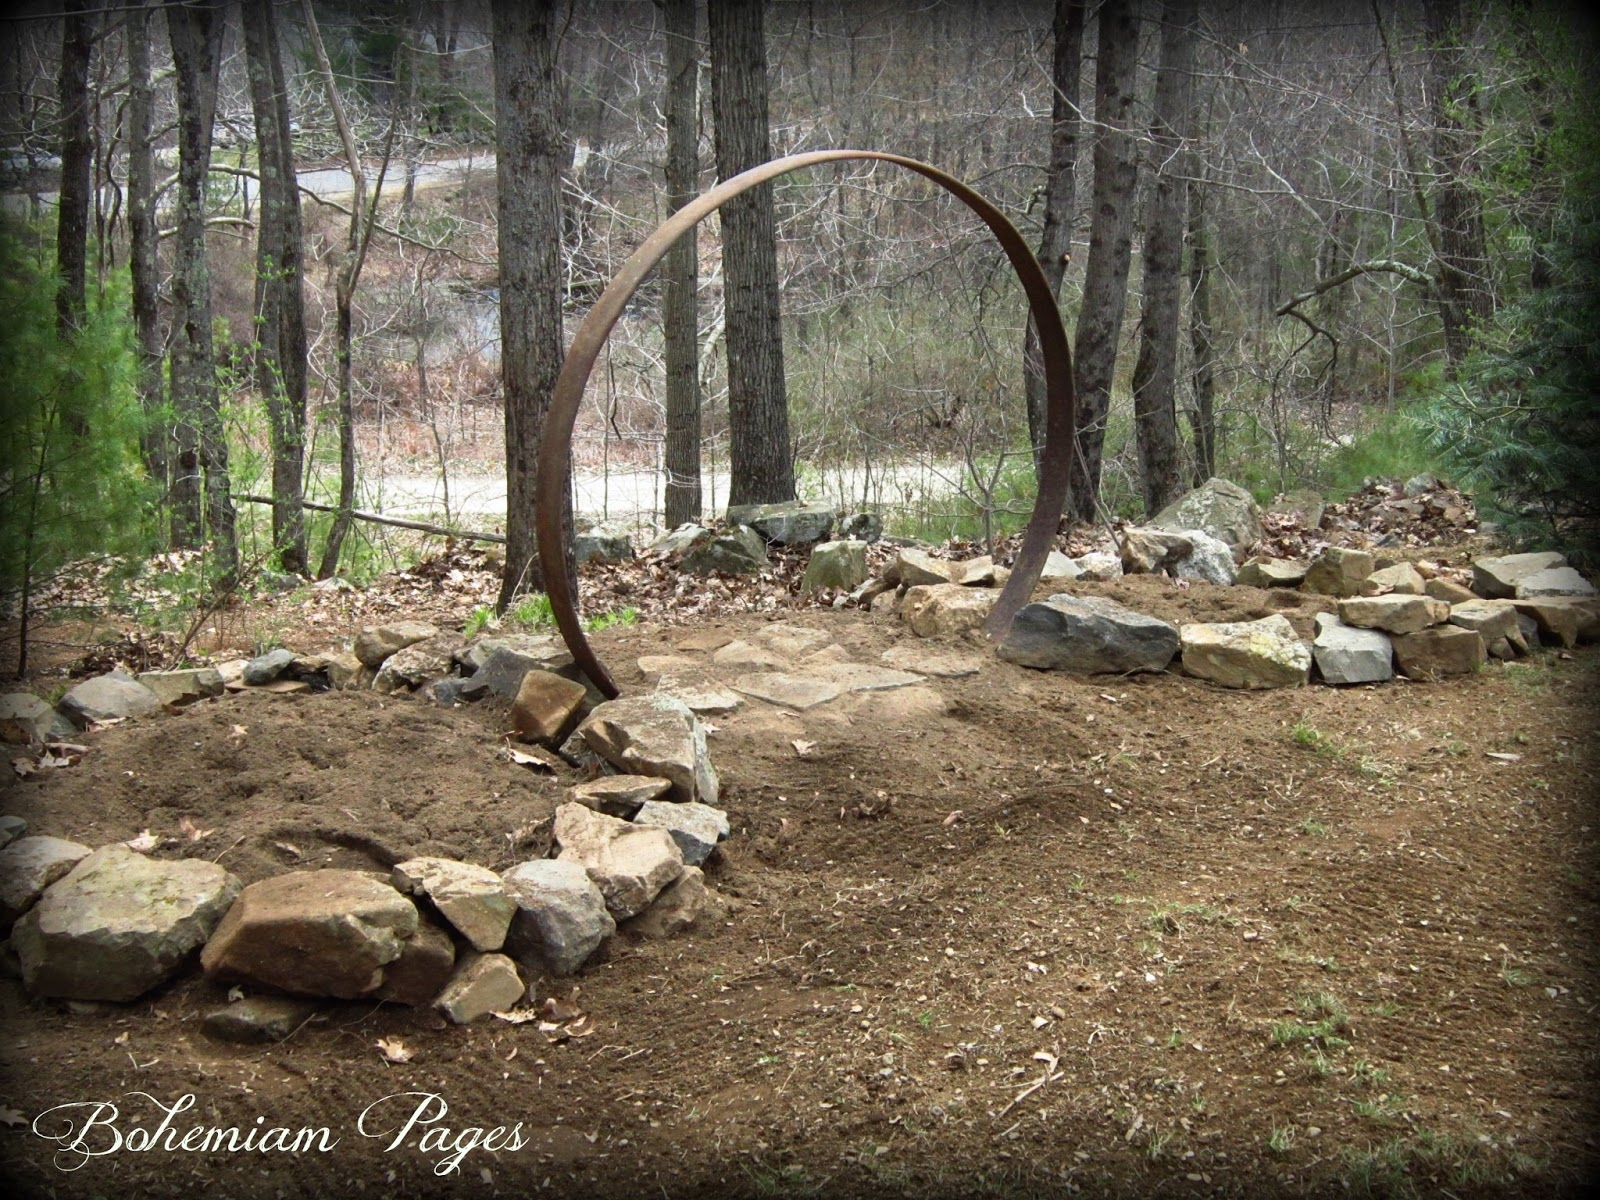 Bohemian pages moon gate gardens for Moon garden designs